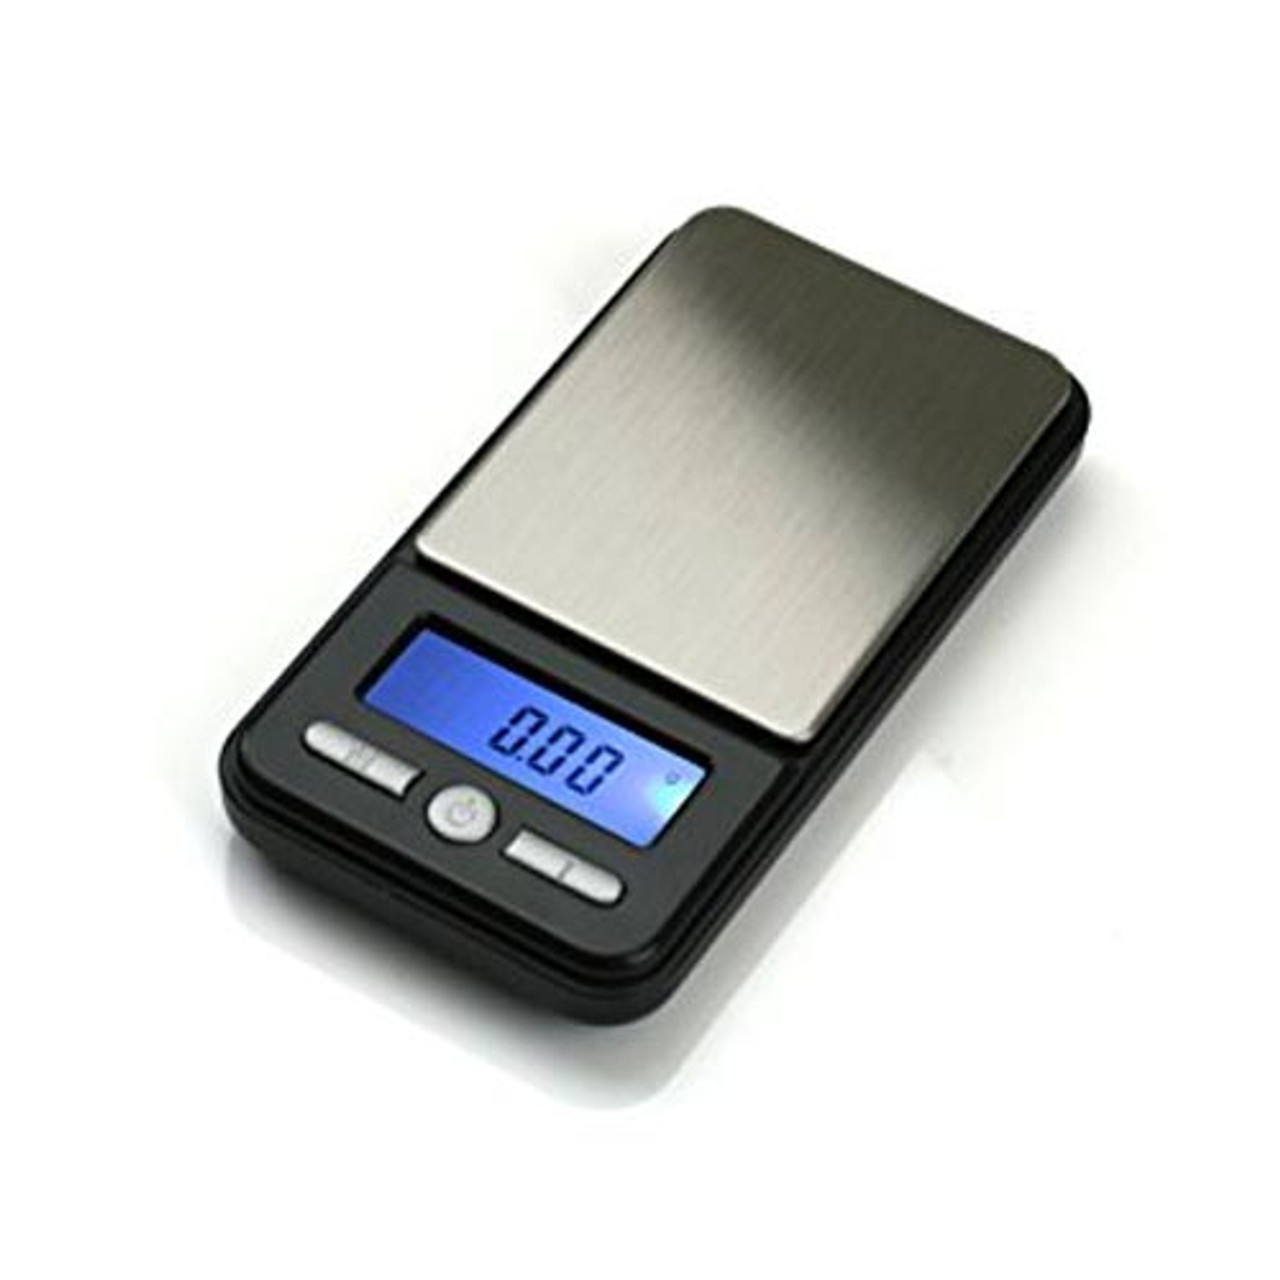 AWS Digital Scale AC-100 (100g x 0.01g) - Black